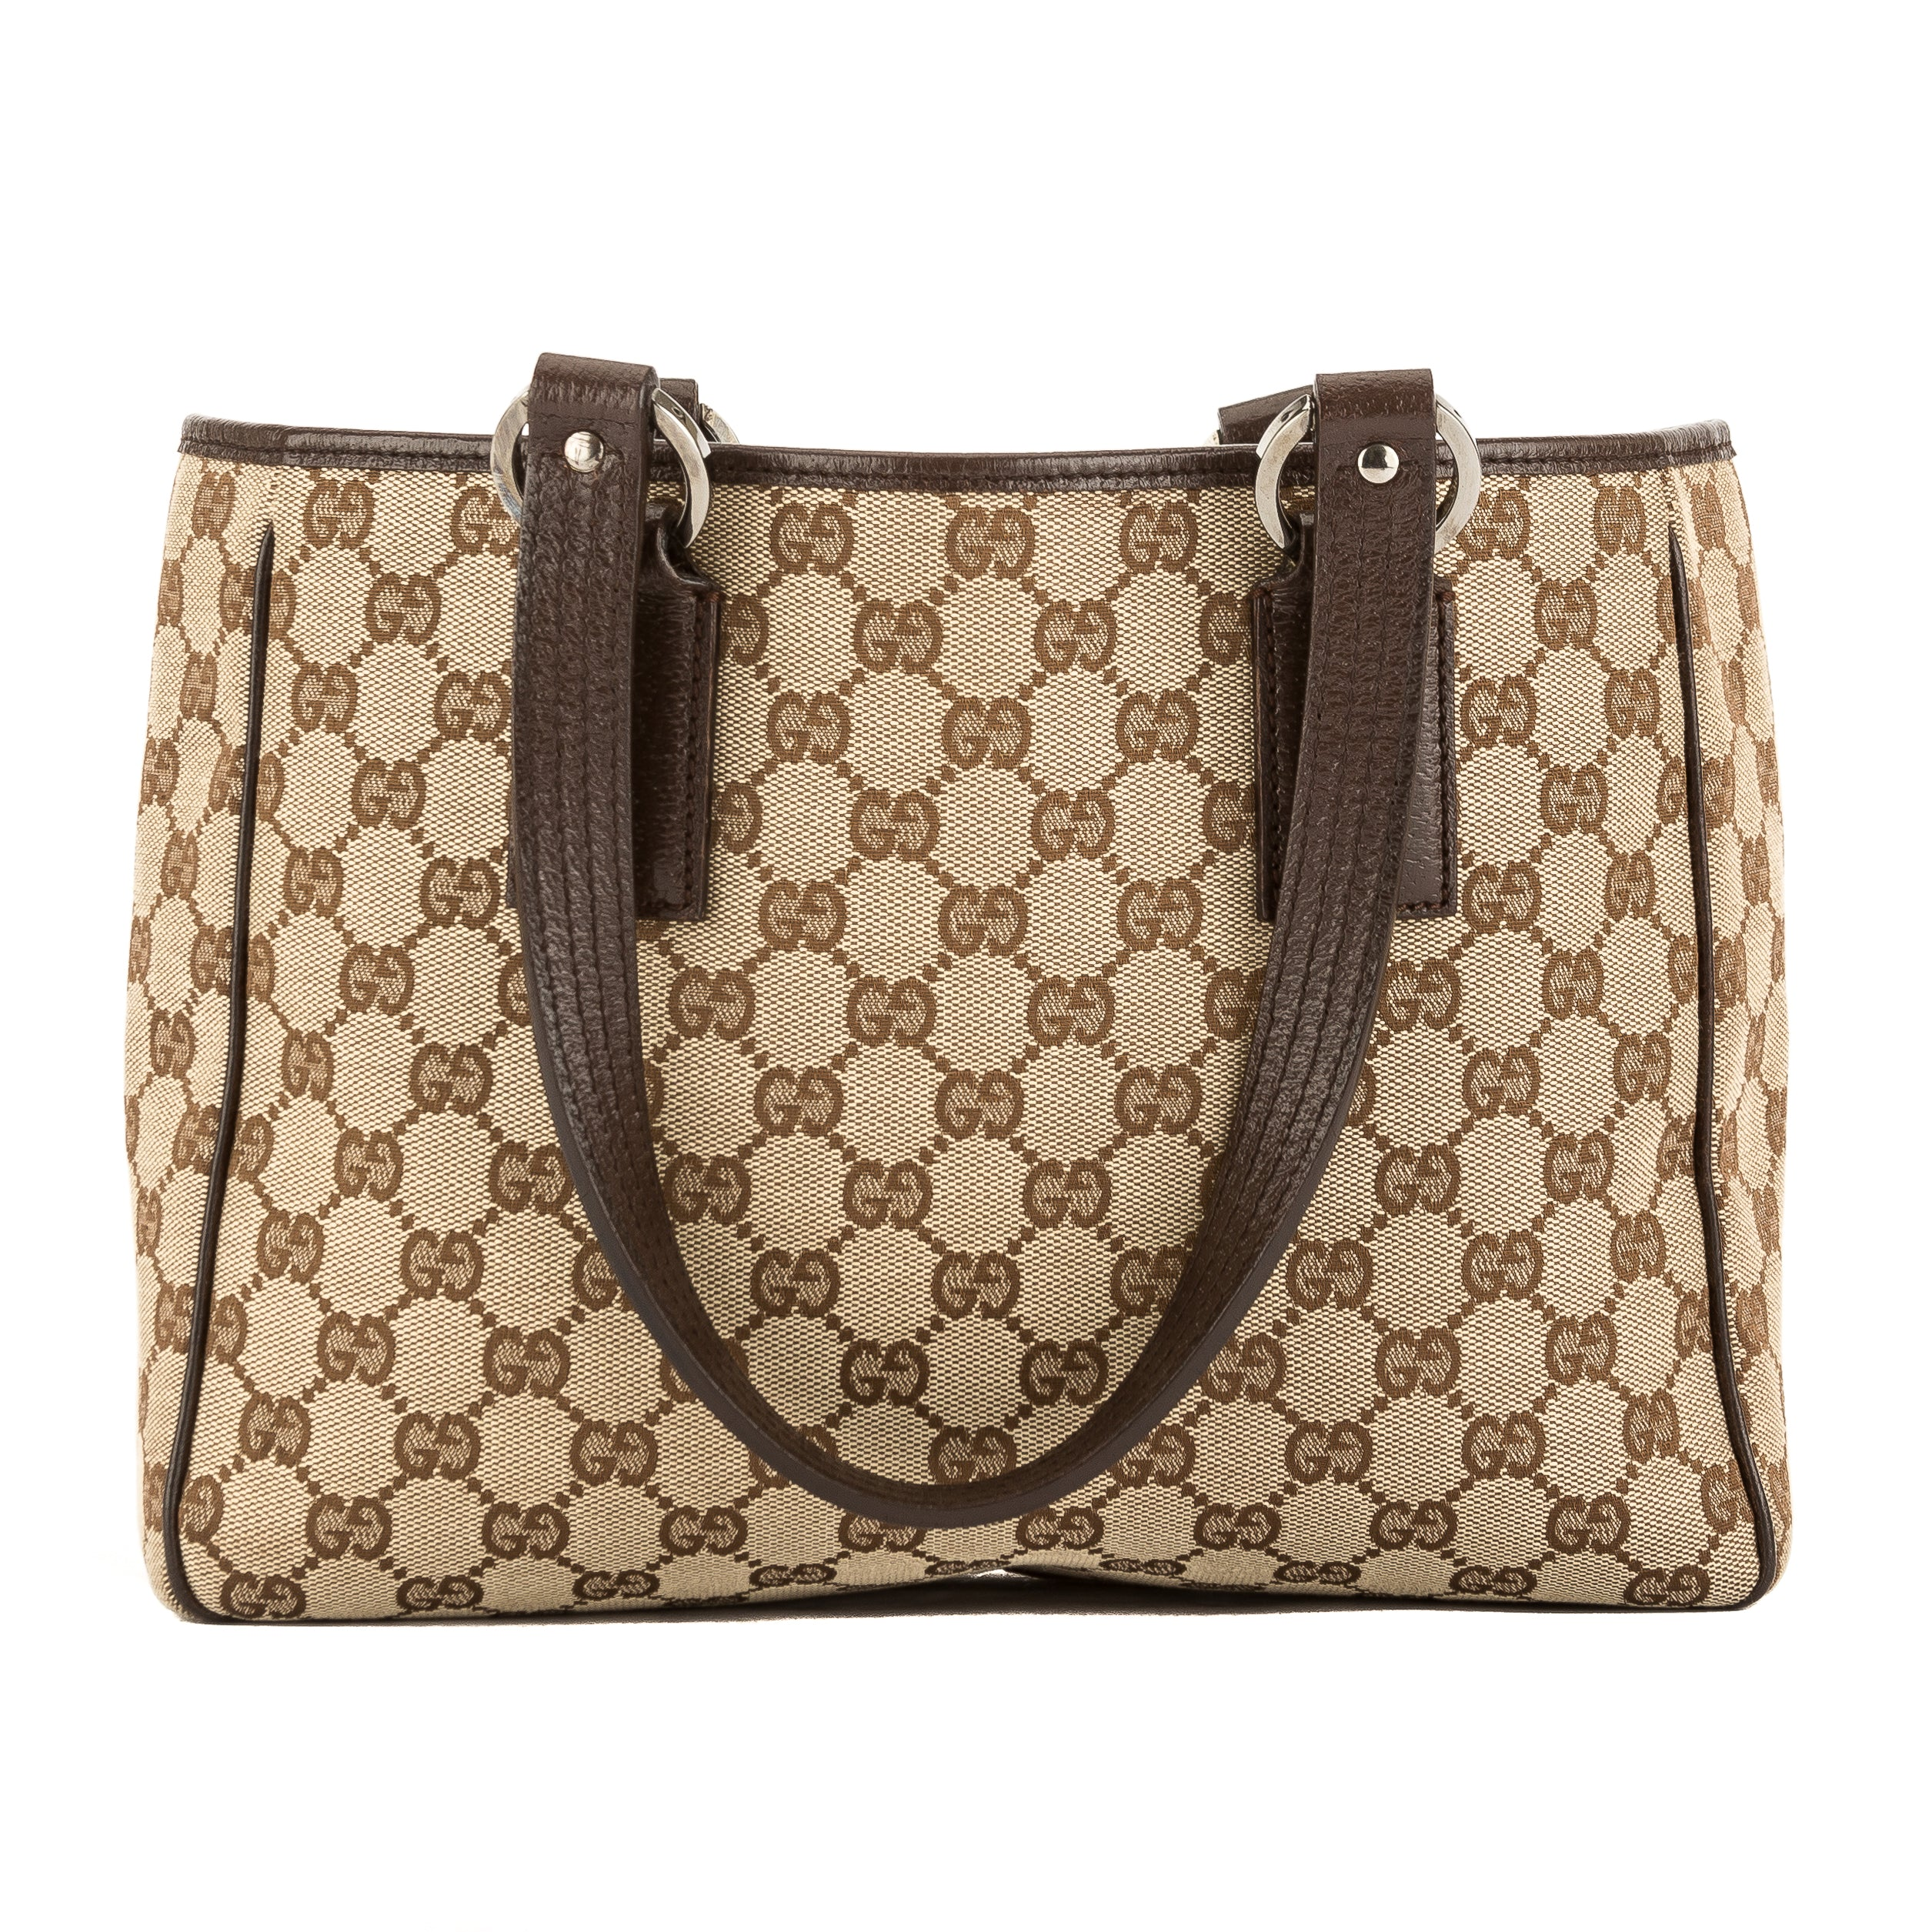 7f5a41f7084 Gucci Brown Leather GG Monogram Canvas Tote Bag (Pre Owned ...